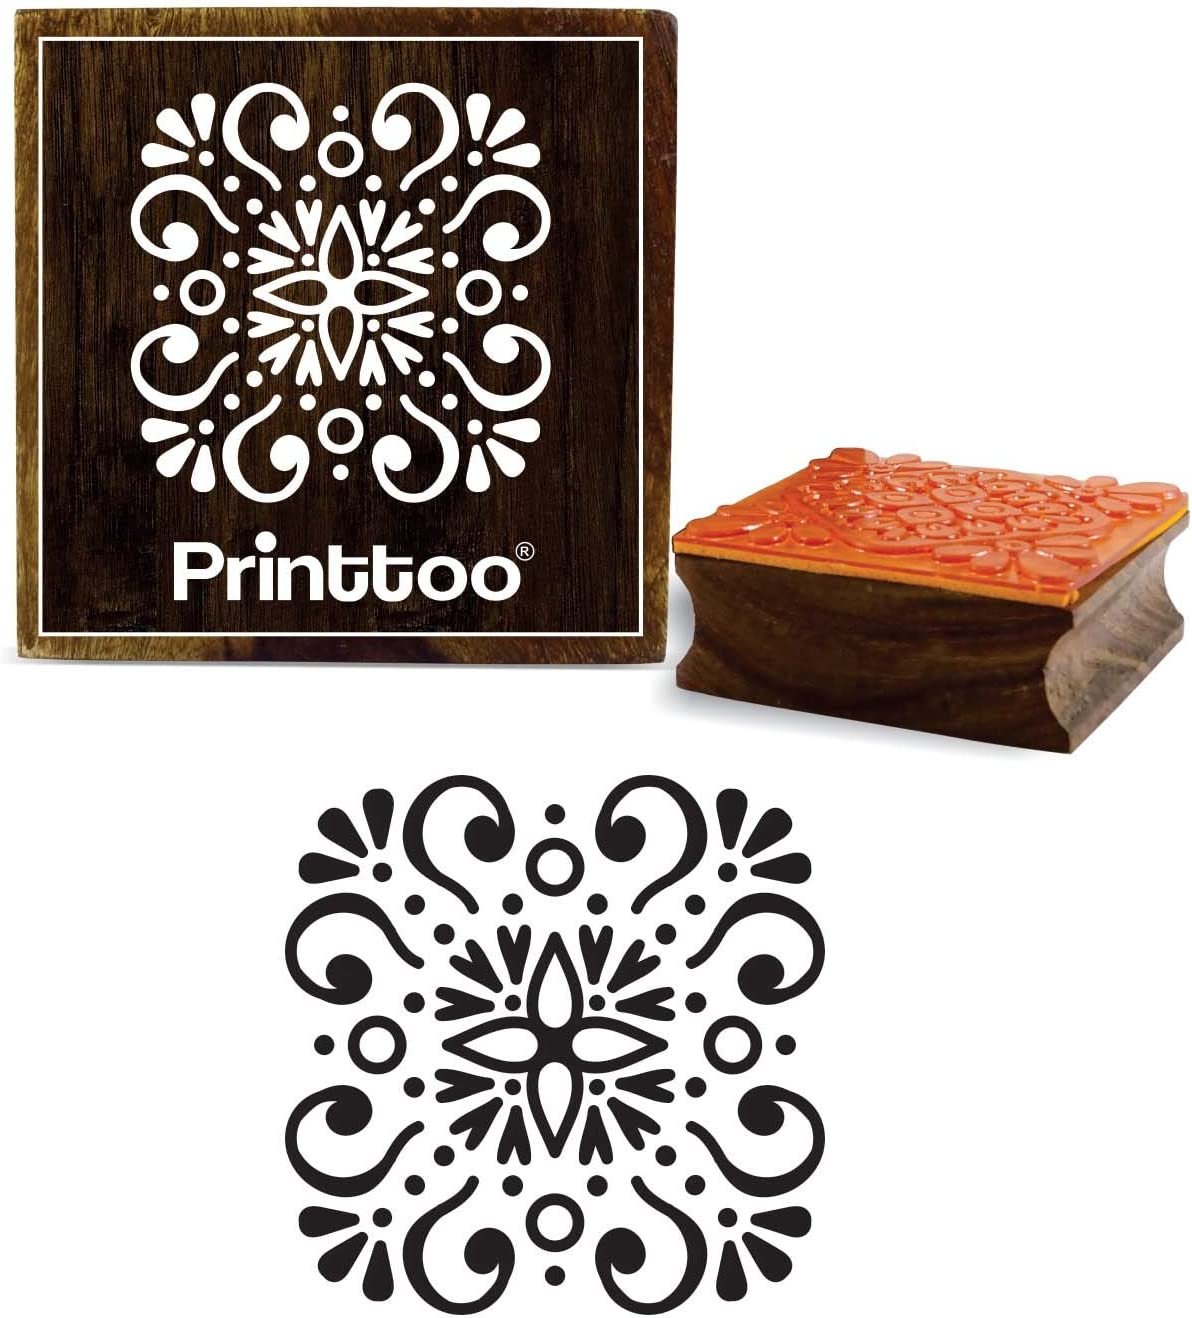 Printtoo Square Starry Christmas Tree Design Wooden Rubber Stamp Scrap-Booking-2 x 2 Inches